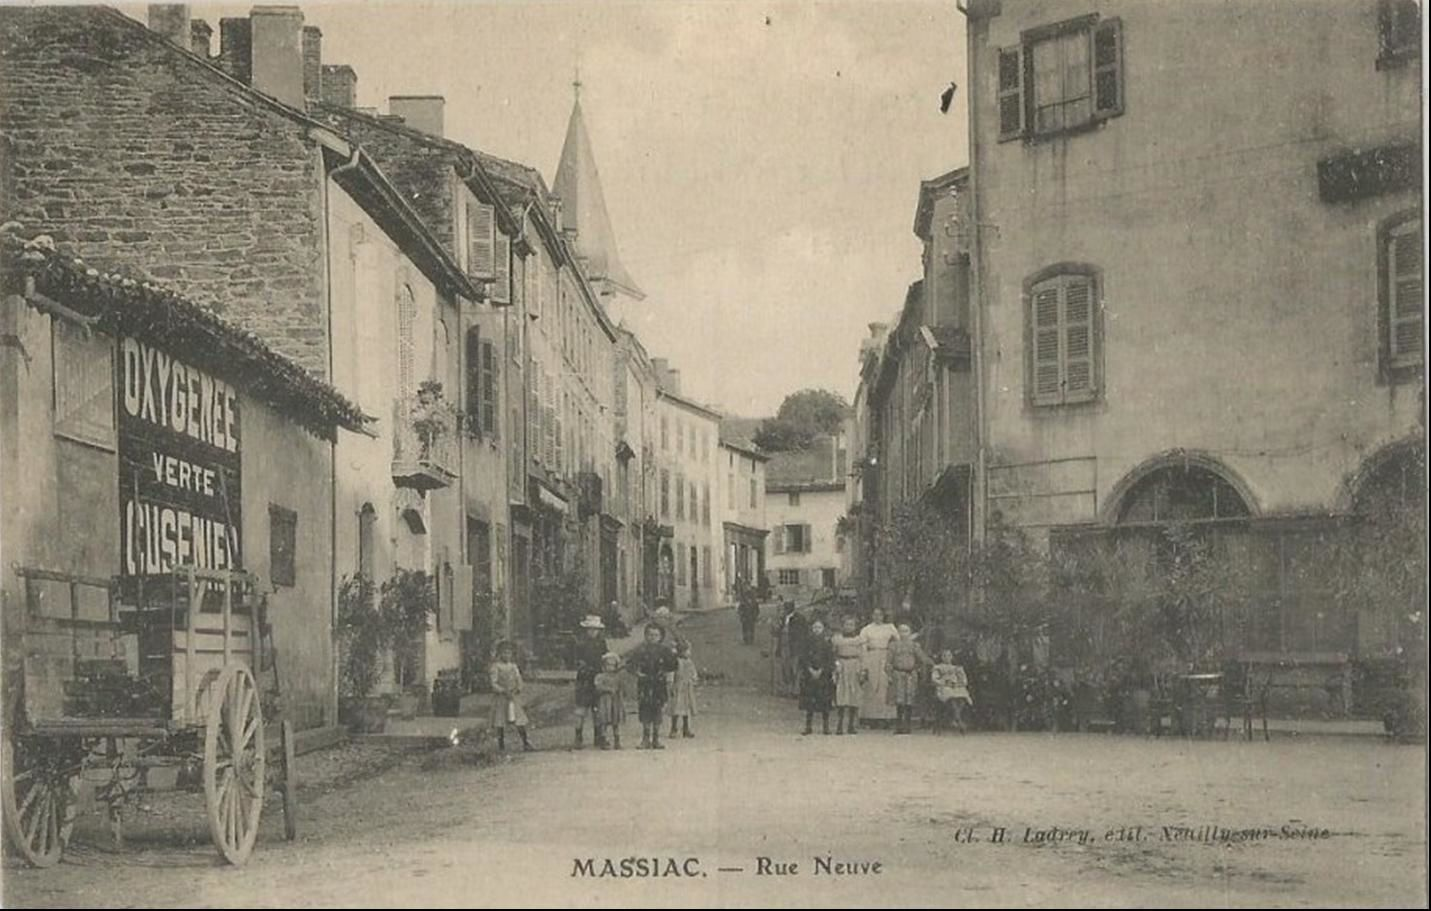 Les rues de Massiac